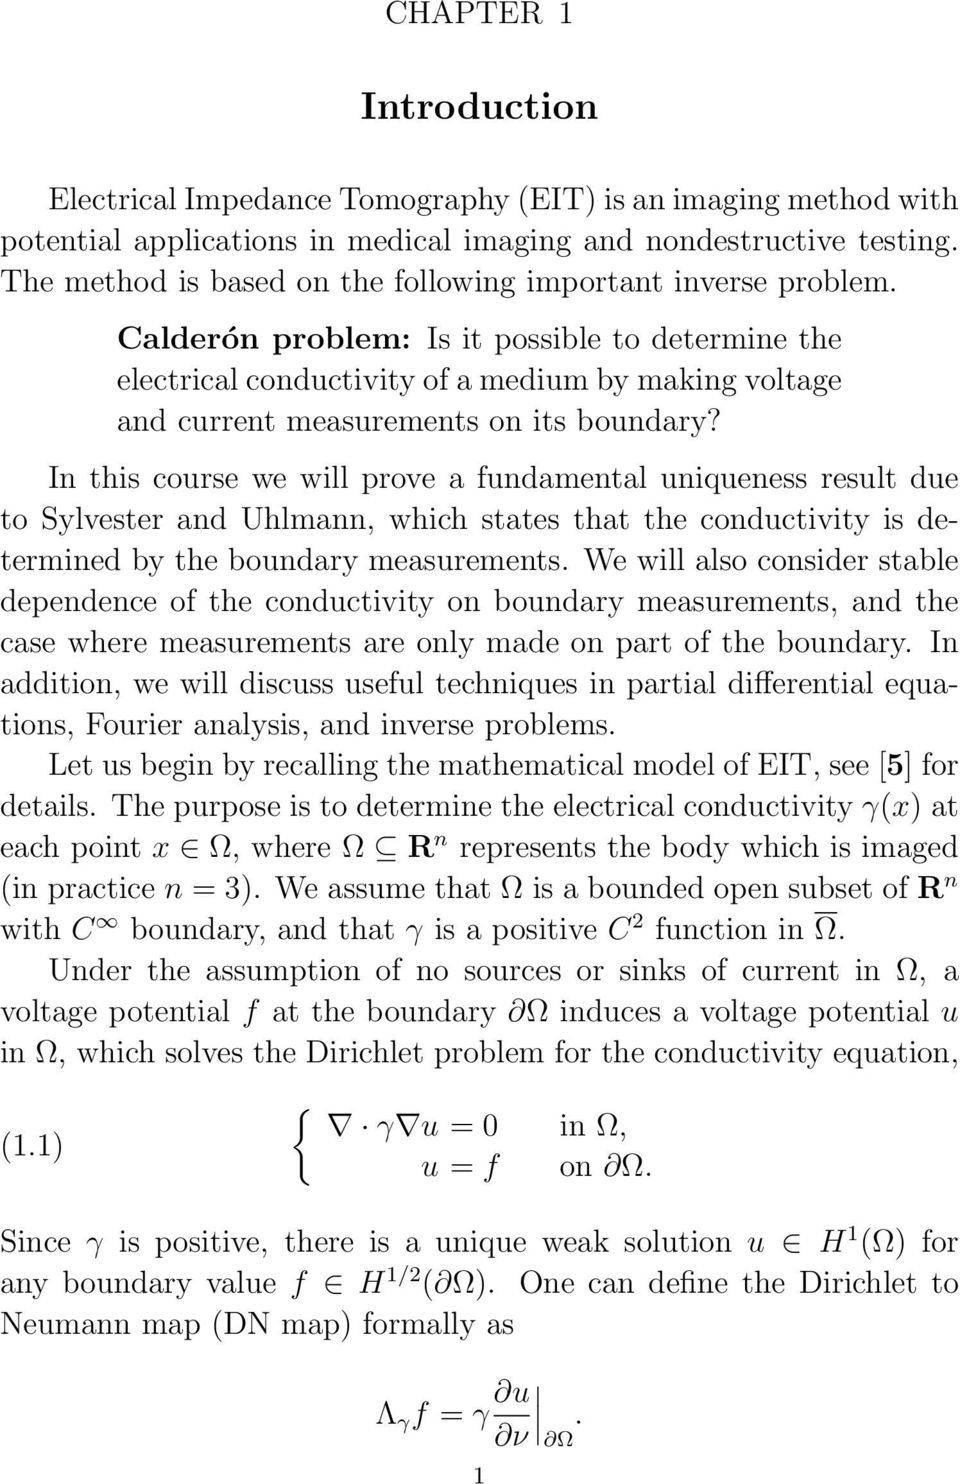 Calderón problem: Is it possible to determine the electrical conductivity of a medium by making voltage and current measurements on its boundary?